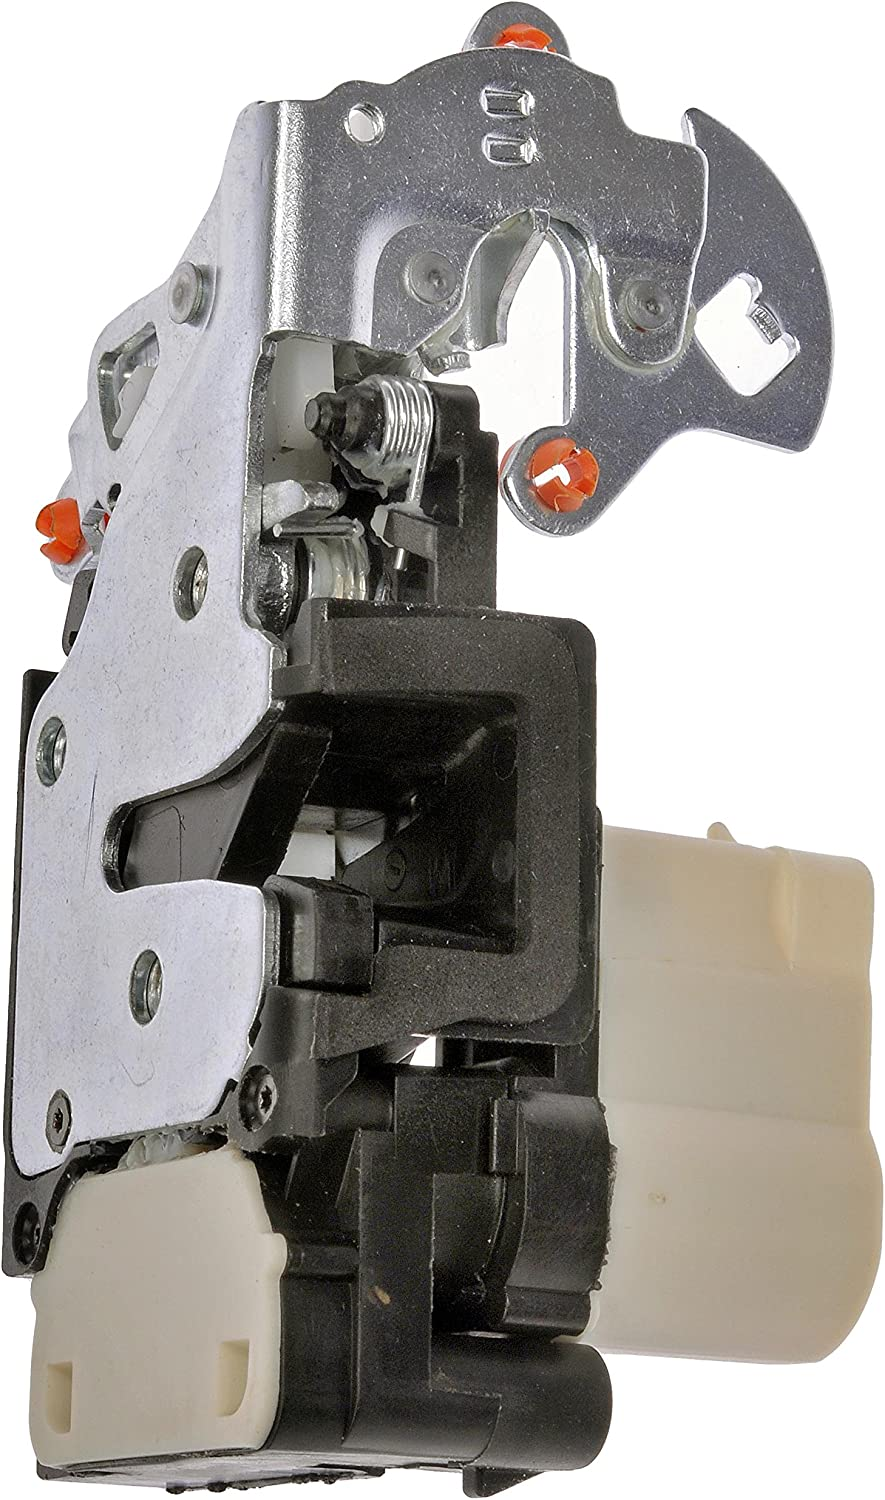 Dorman OE Solutions 931-006 Door Lock Actuator Motor